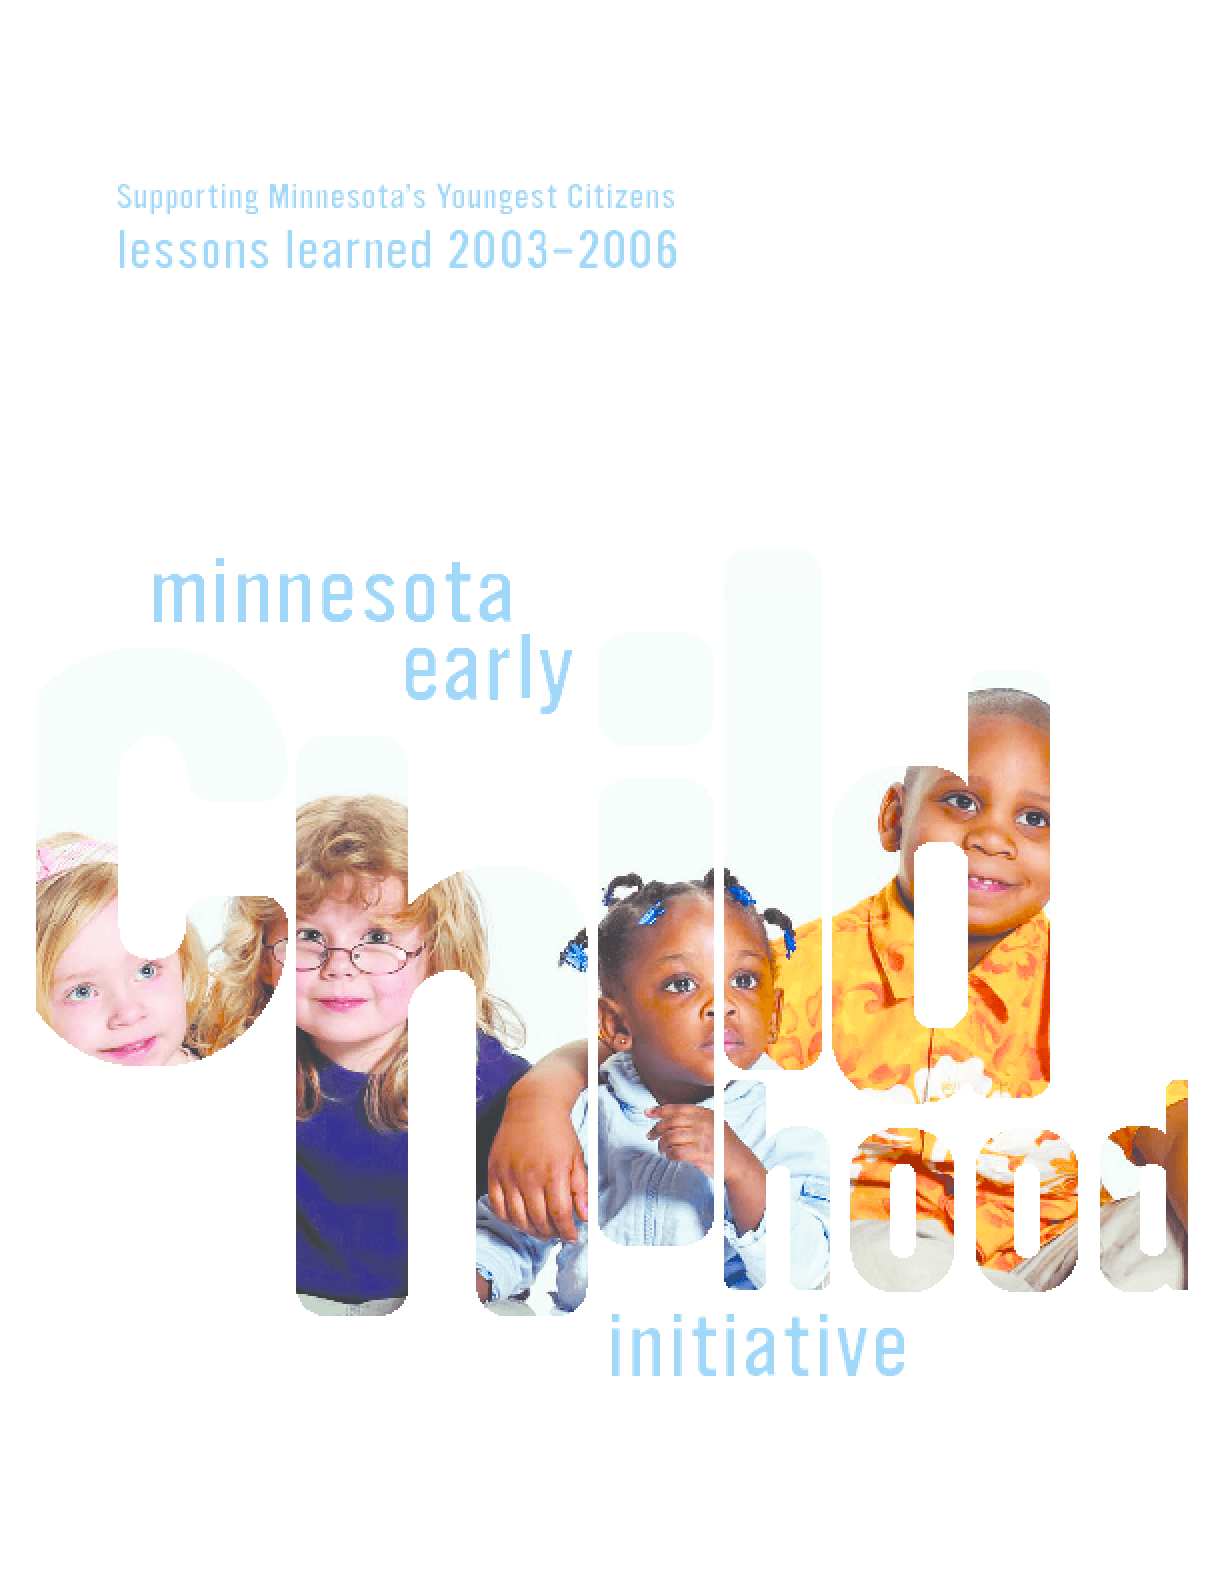 Supporting Minnesota's Youngest Citizens: Lessons Learned 2003-2006